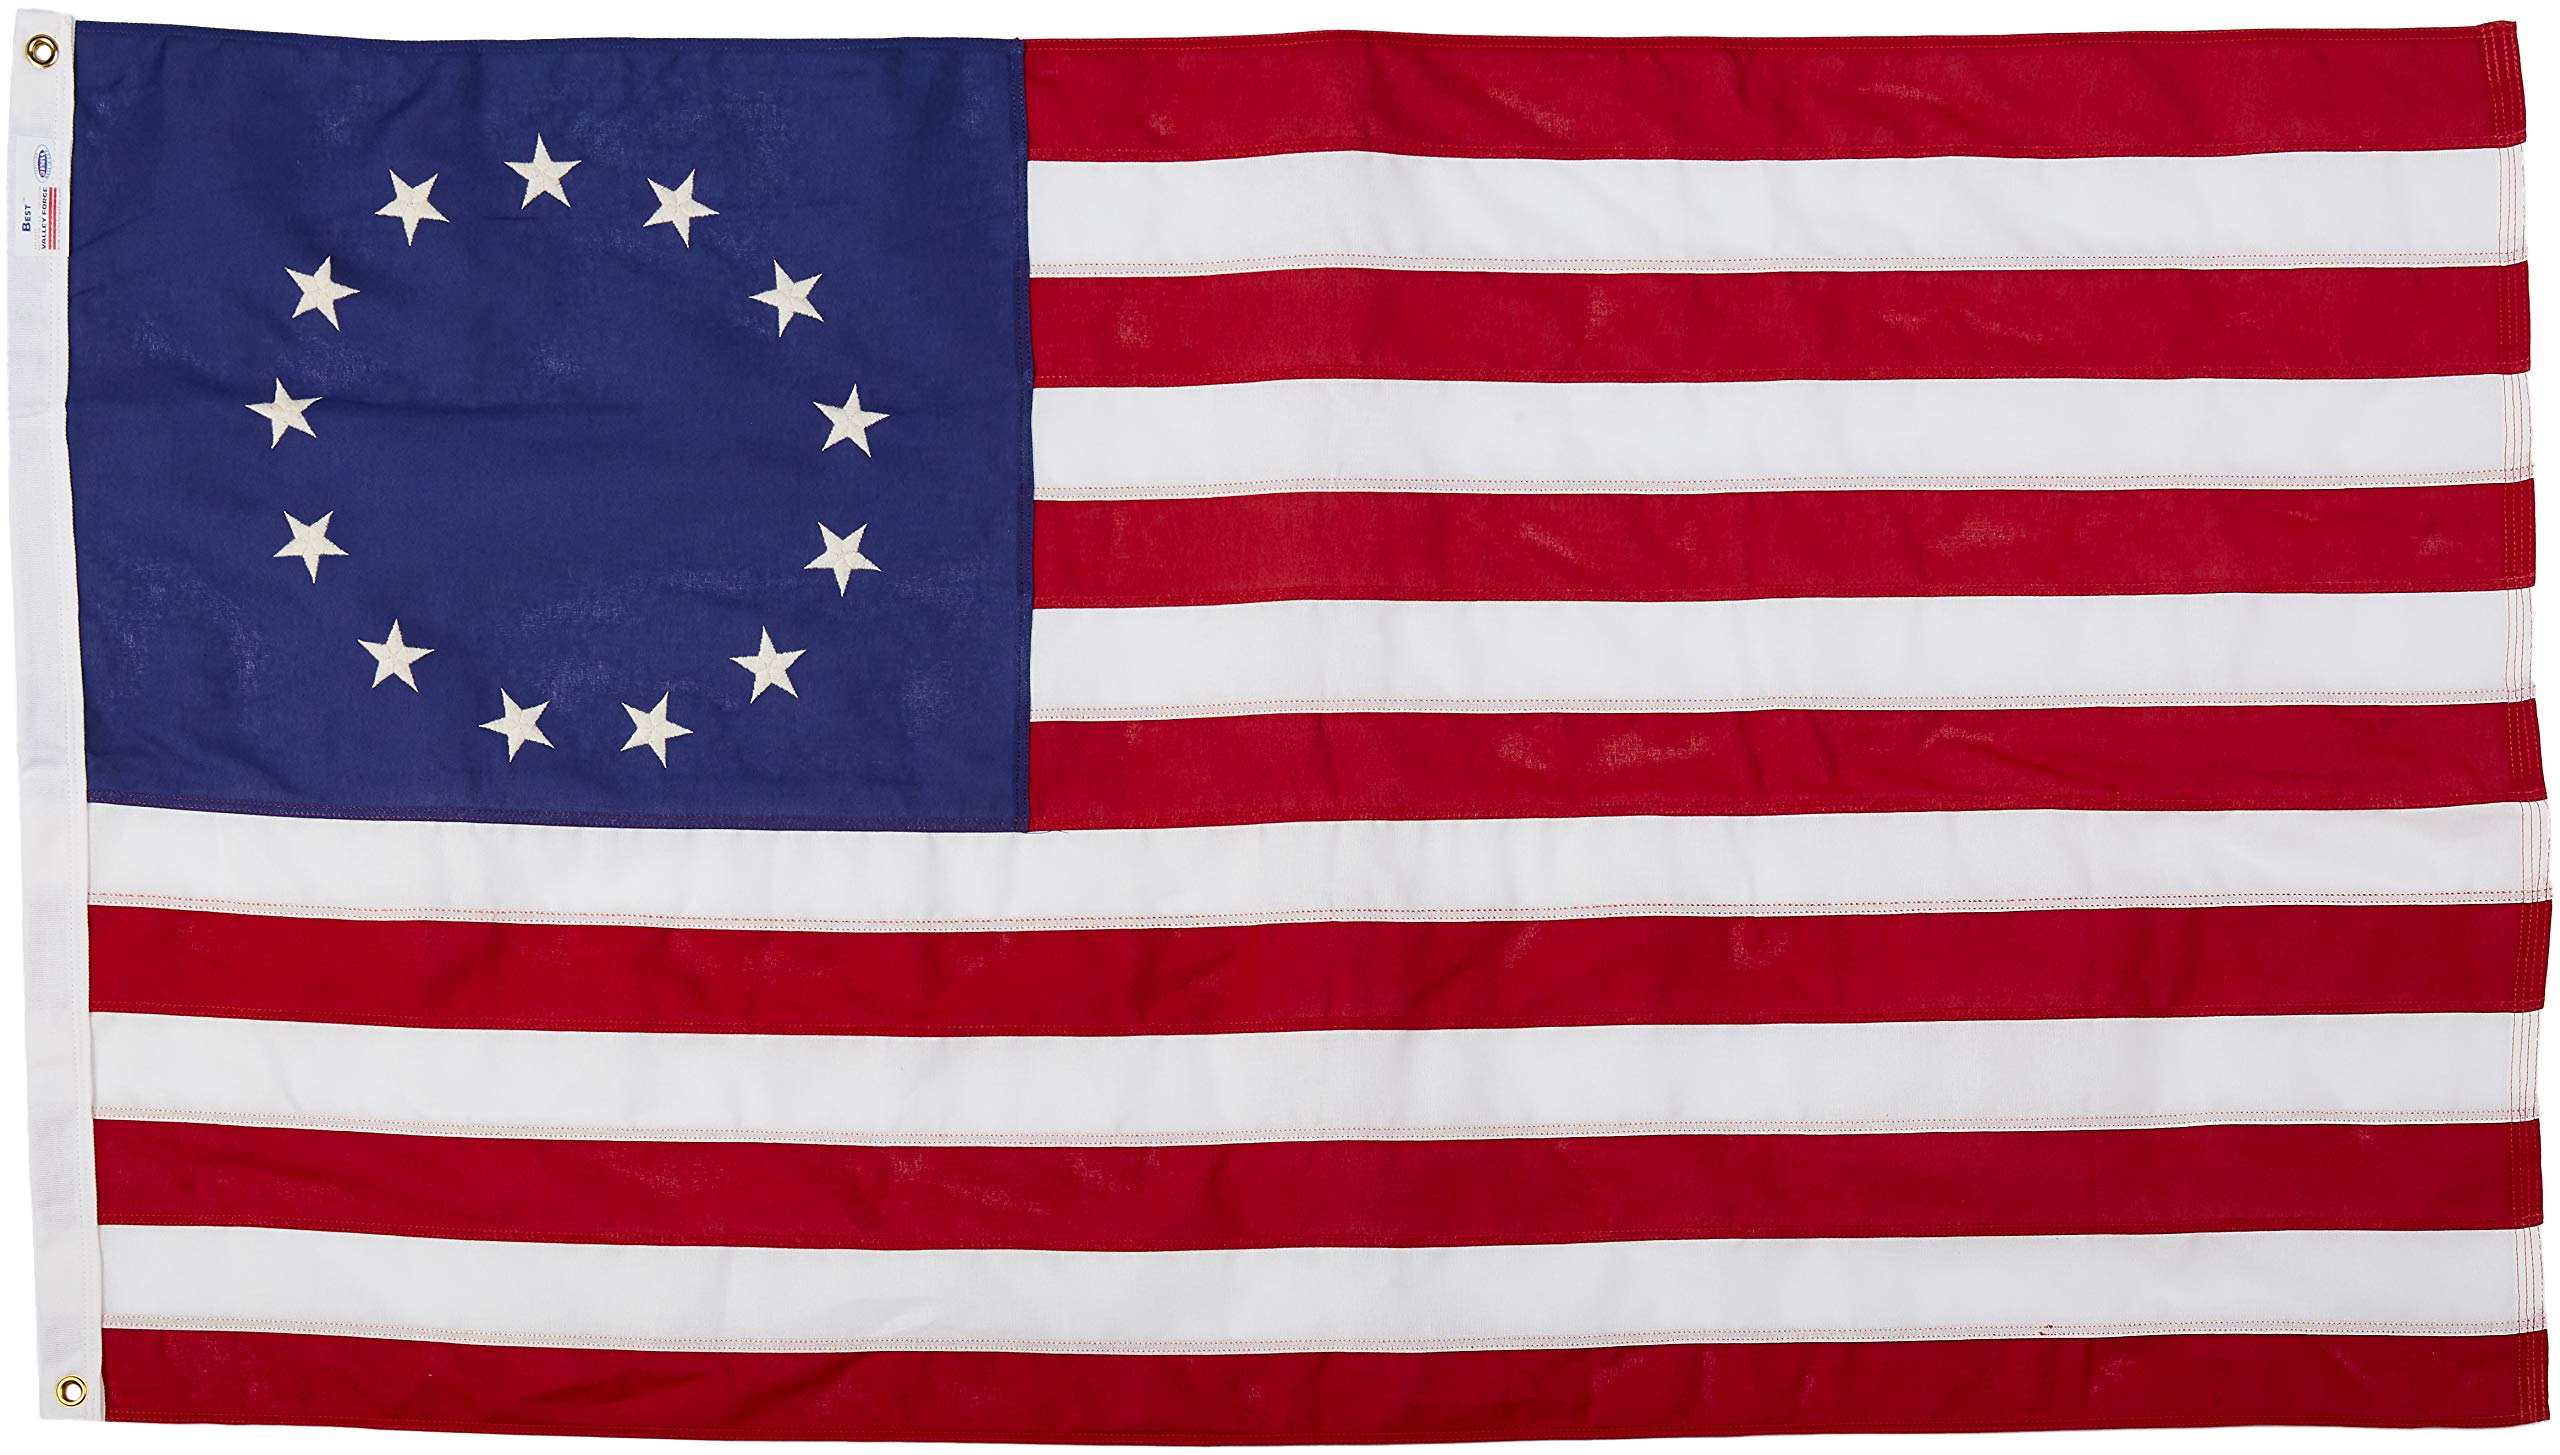 Valley Forge Betsy Ross Flag 3x5 Foot Cotton/Best by Valley Forge